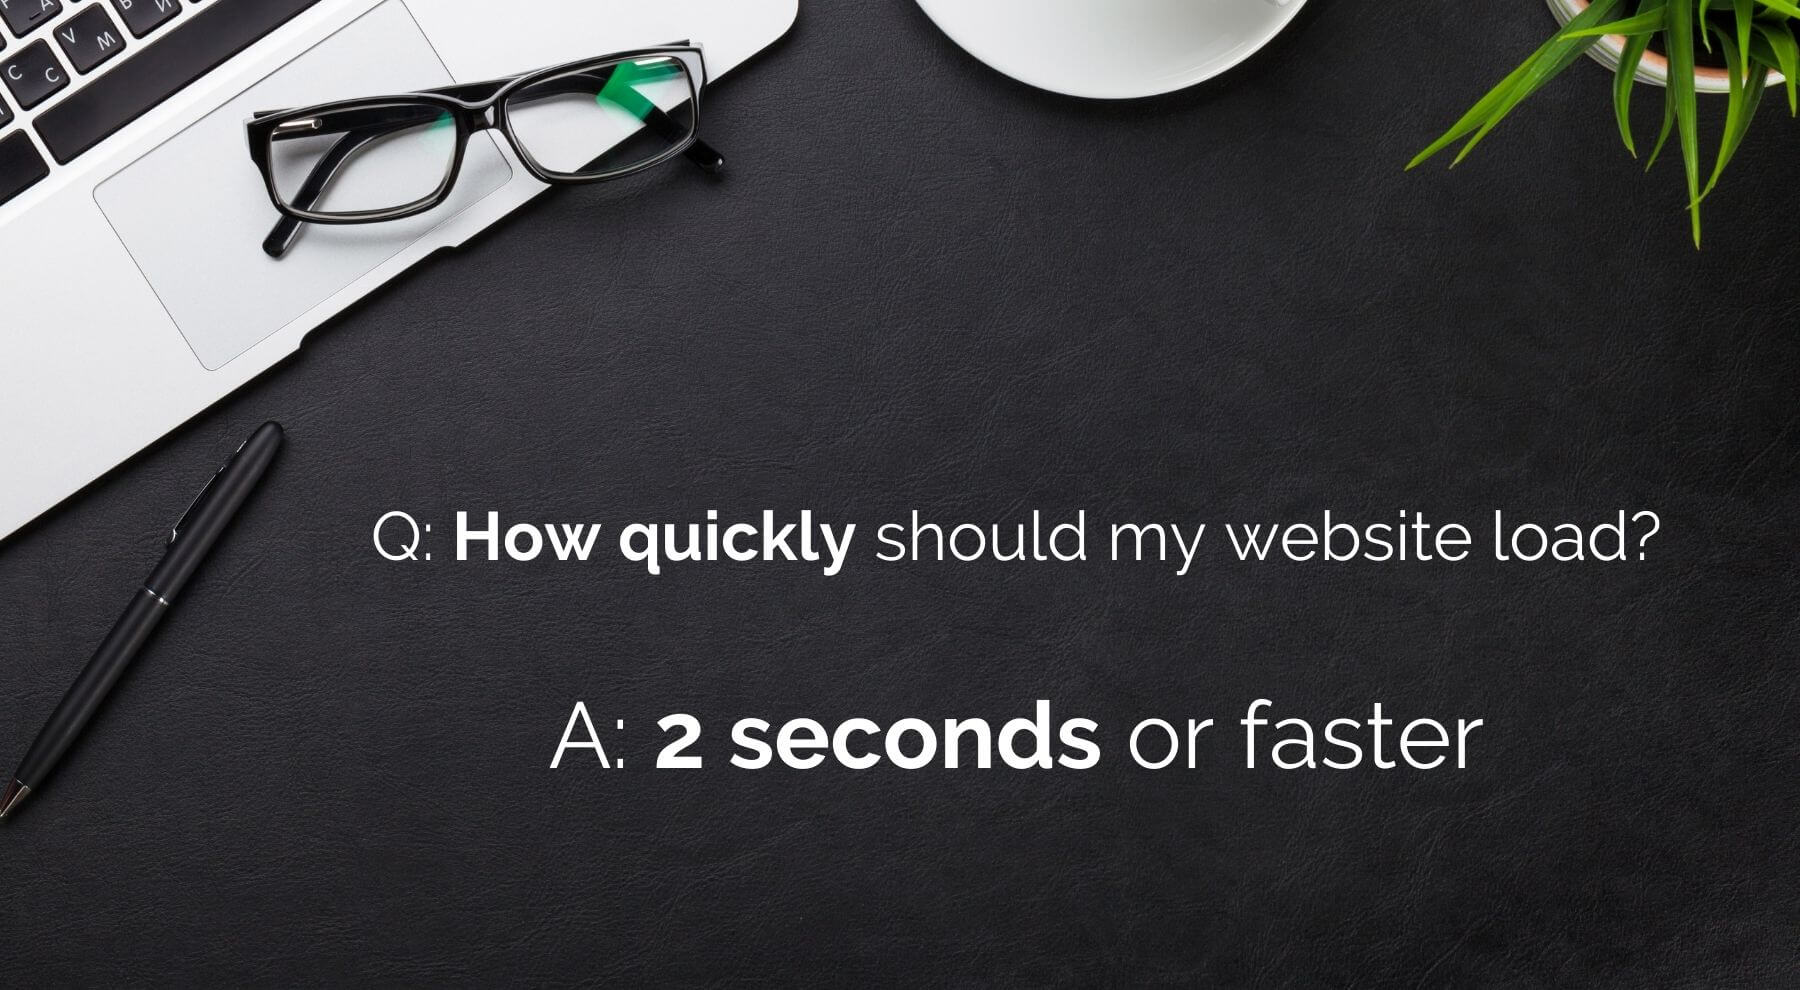 Q: how quickly should my website load? A: 2 seconds or faster